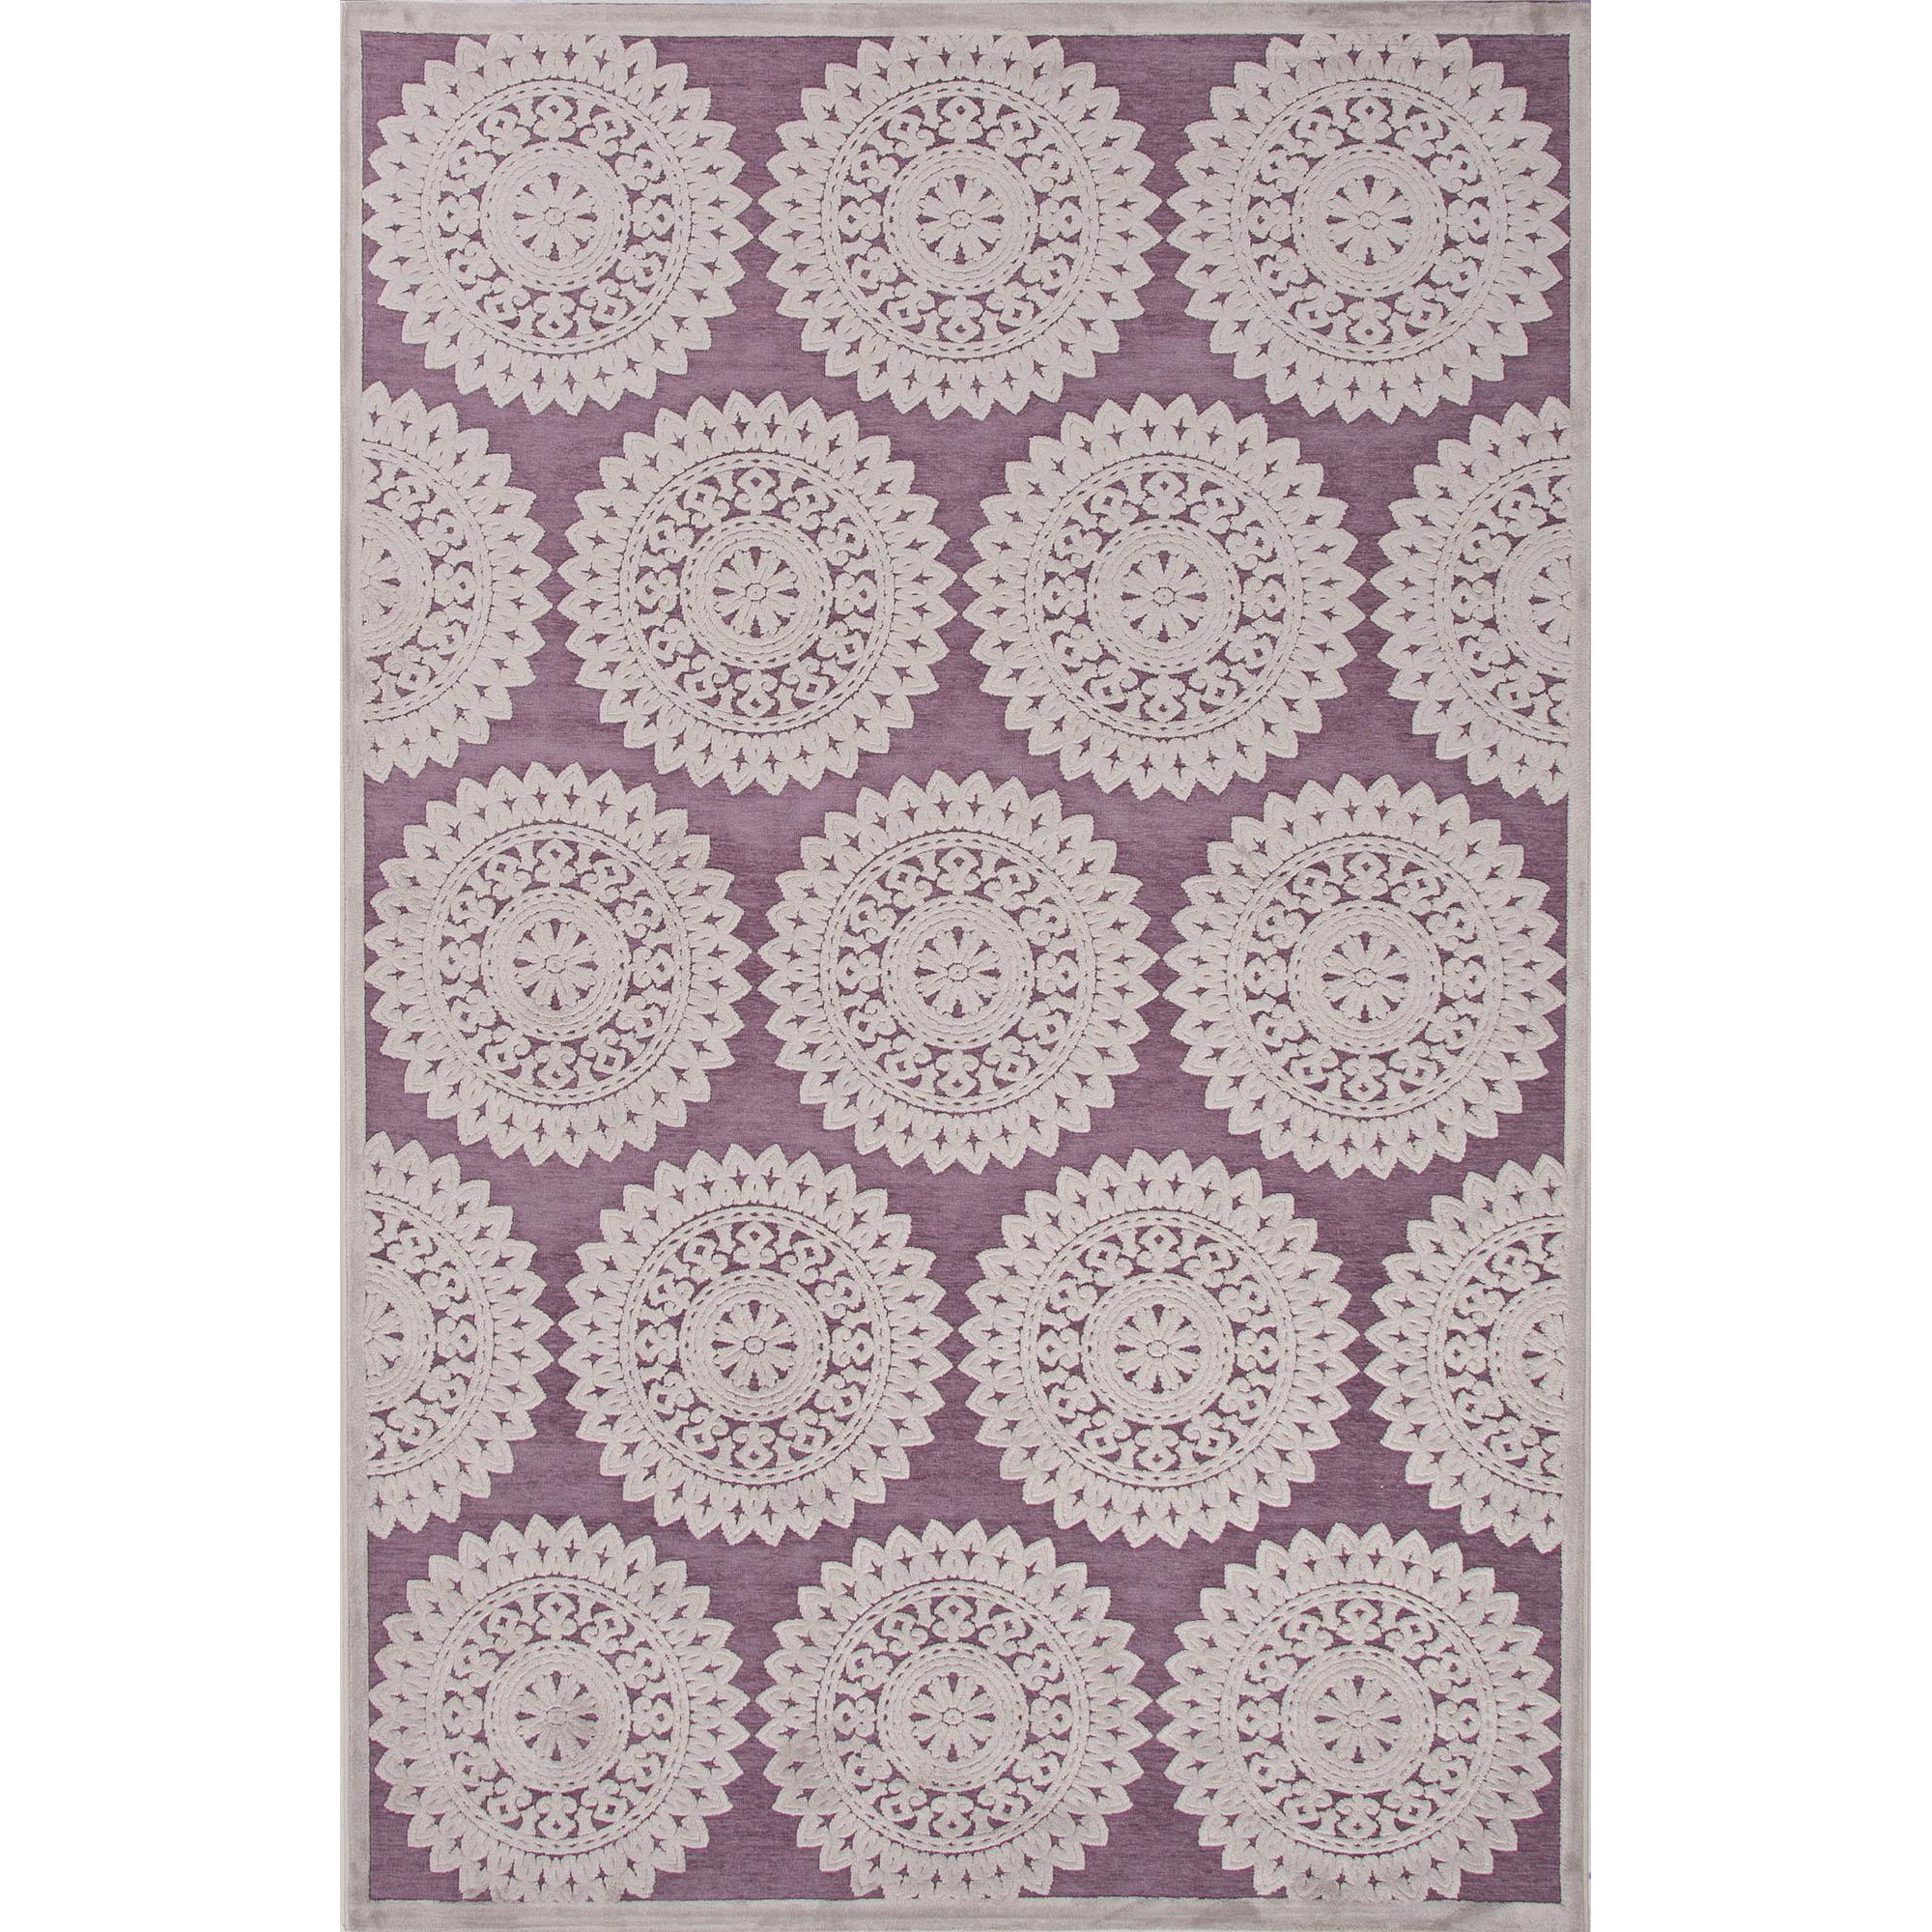 JAIPUR Rugs Fables 5 x 7.6 Rug - Item Number: RUG121044